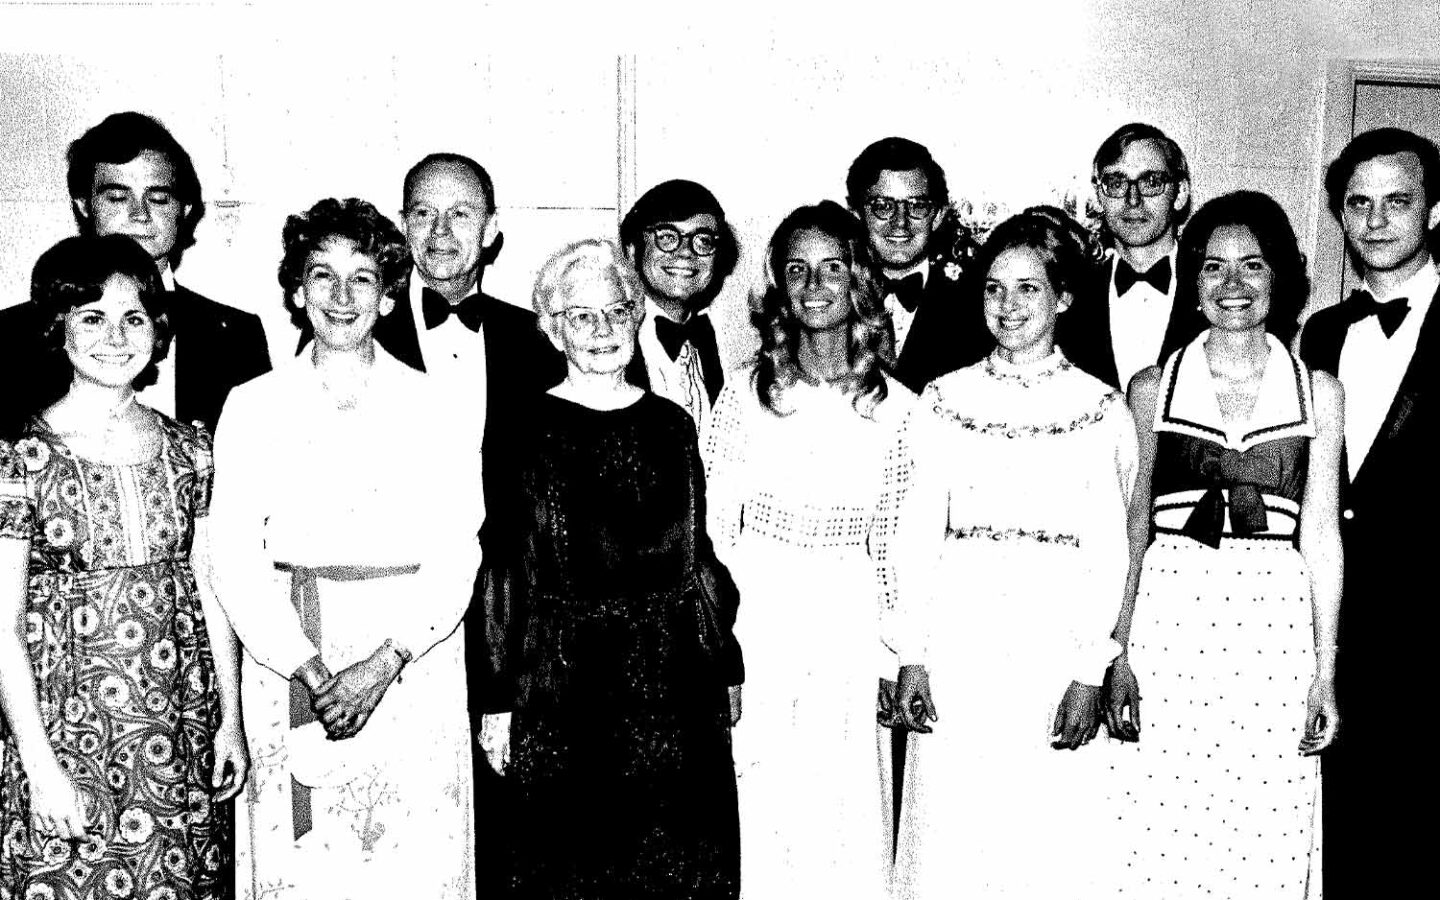 historical black and white photo of a group of people smiling at the camera